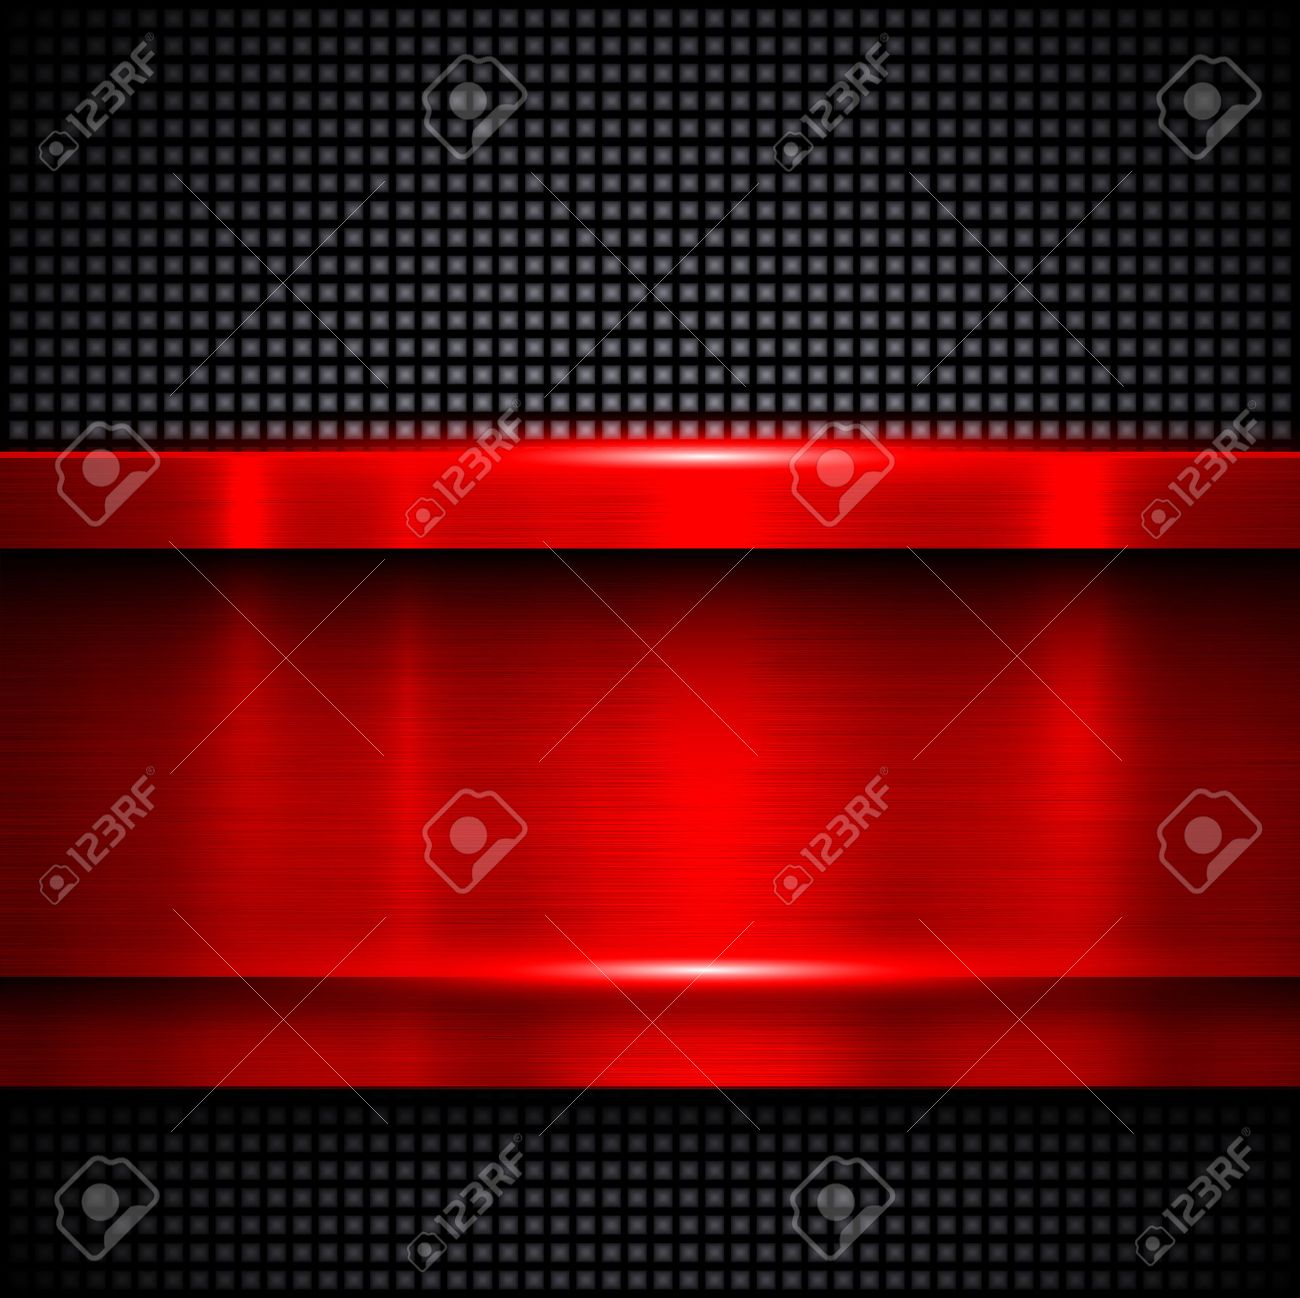 Background red metal texture, vector illustration. - 40955262